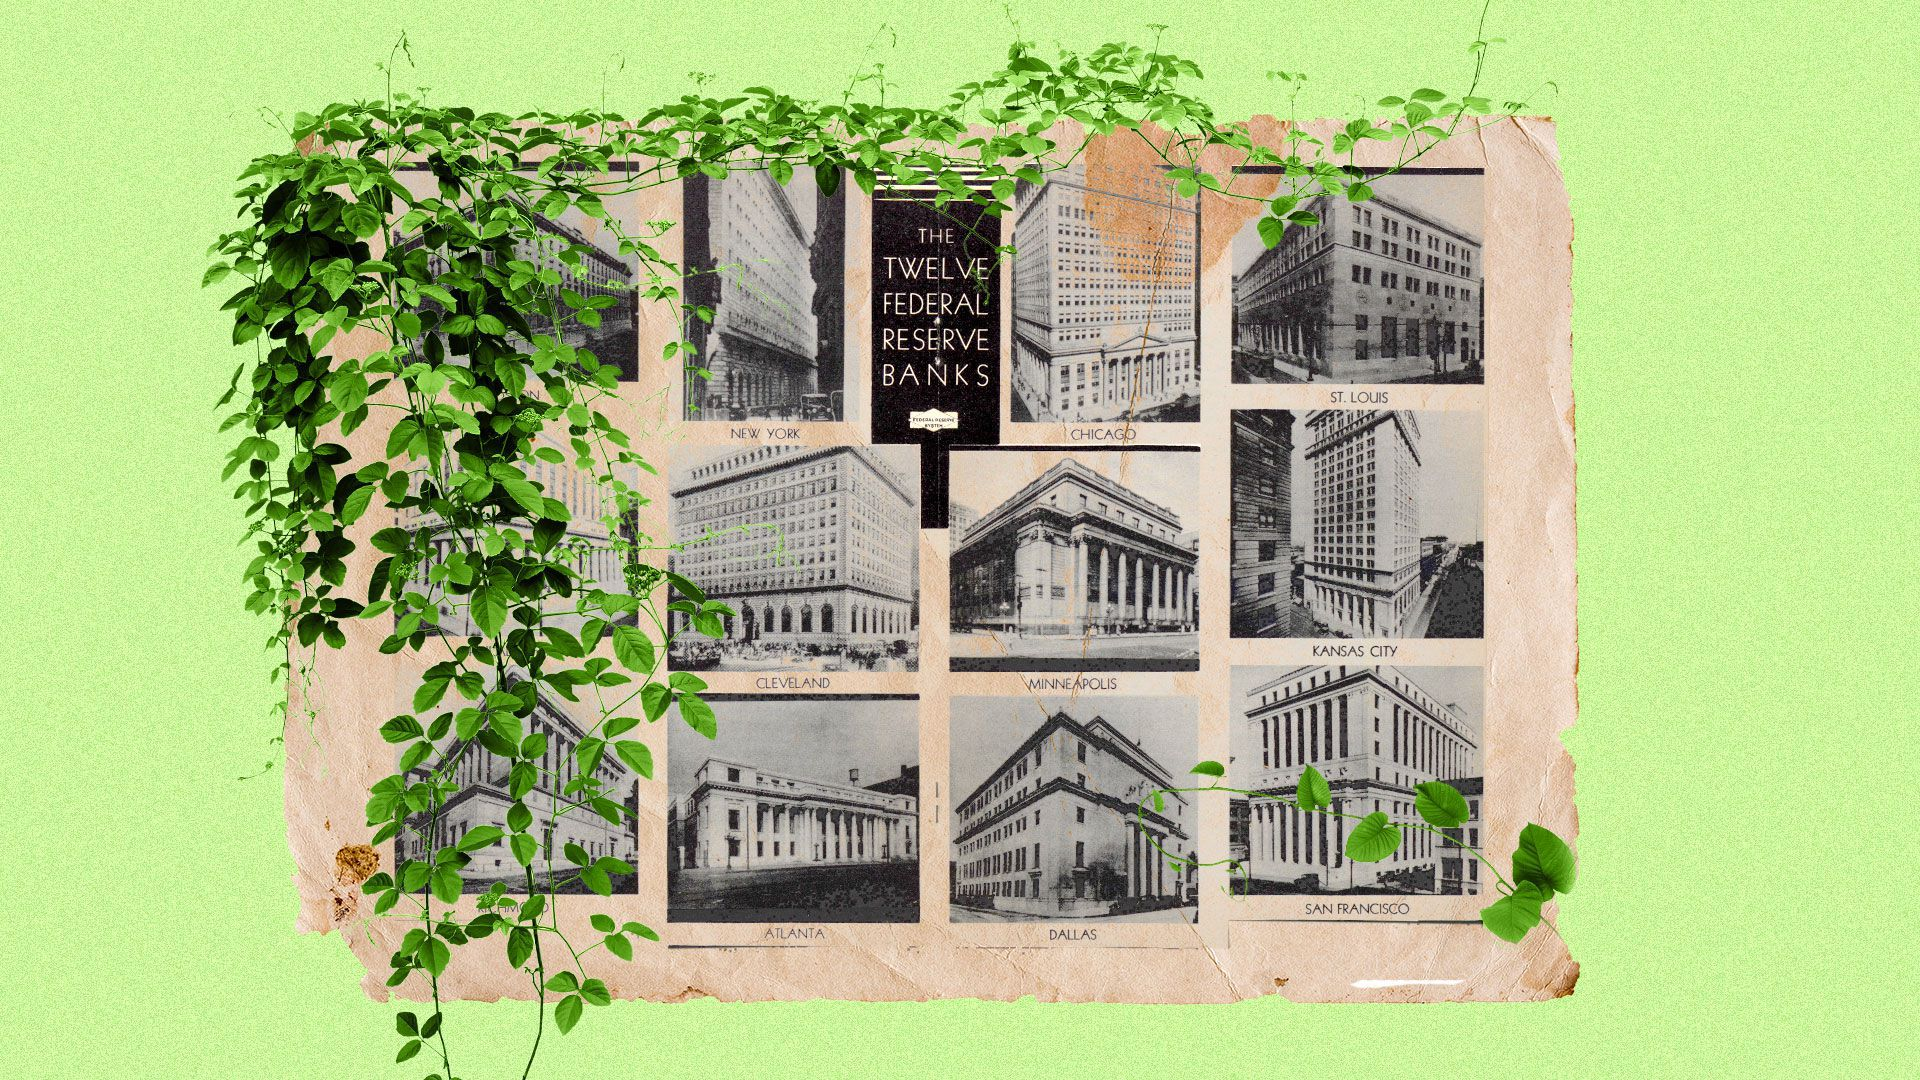 Illustrated collage of a historical image of the federal reserve banks with greenery.